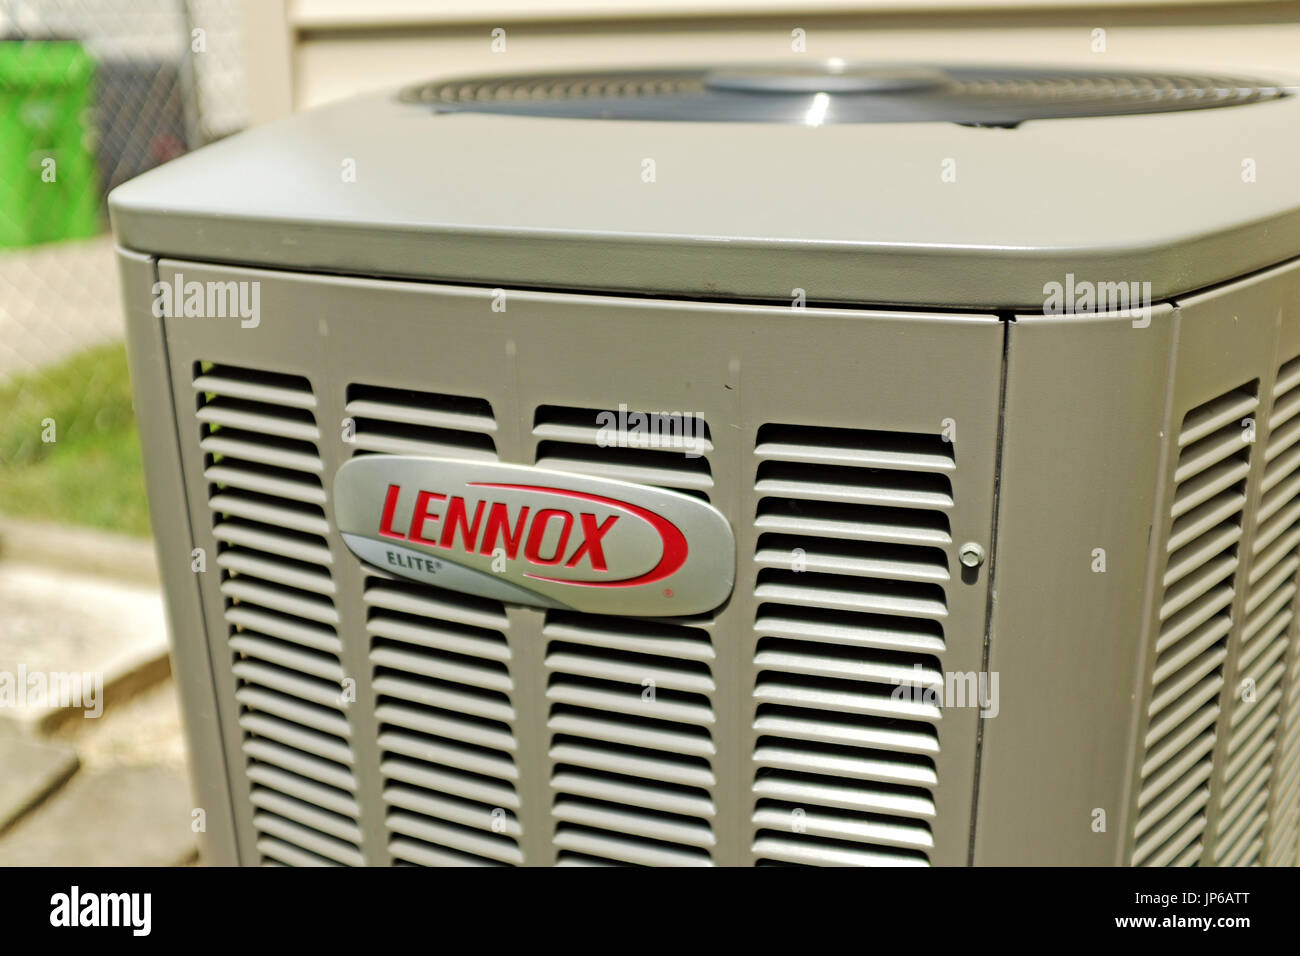 Air conditioning system stock photos air conditioning for Lennox program